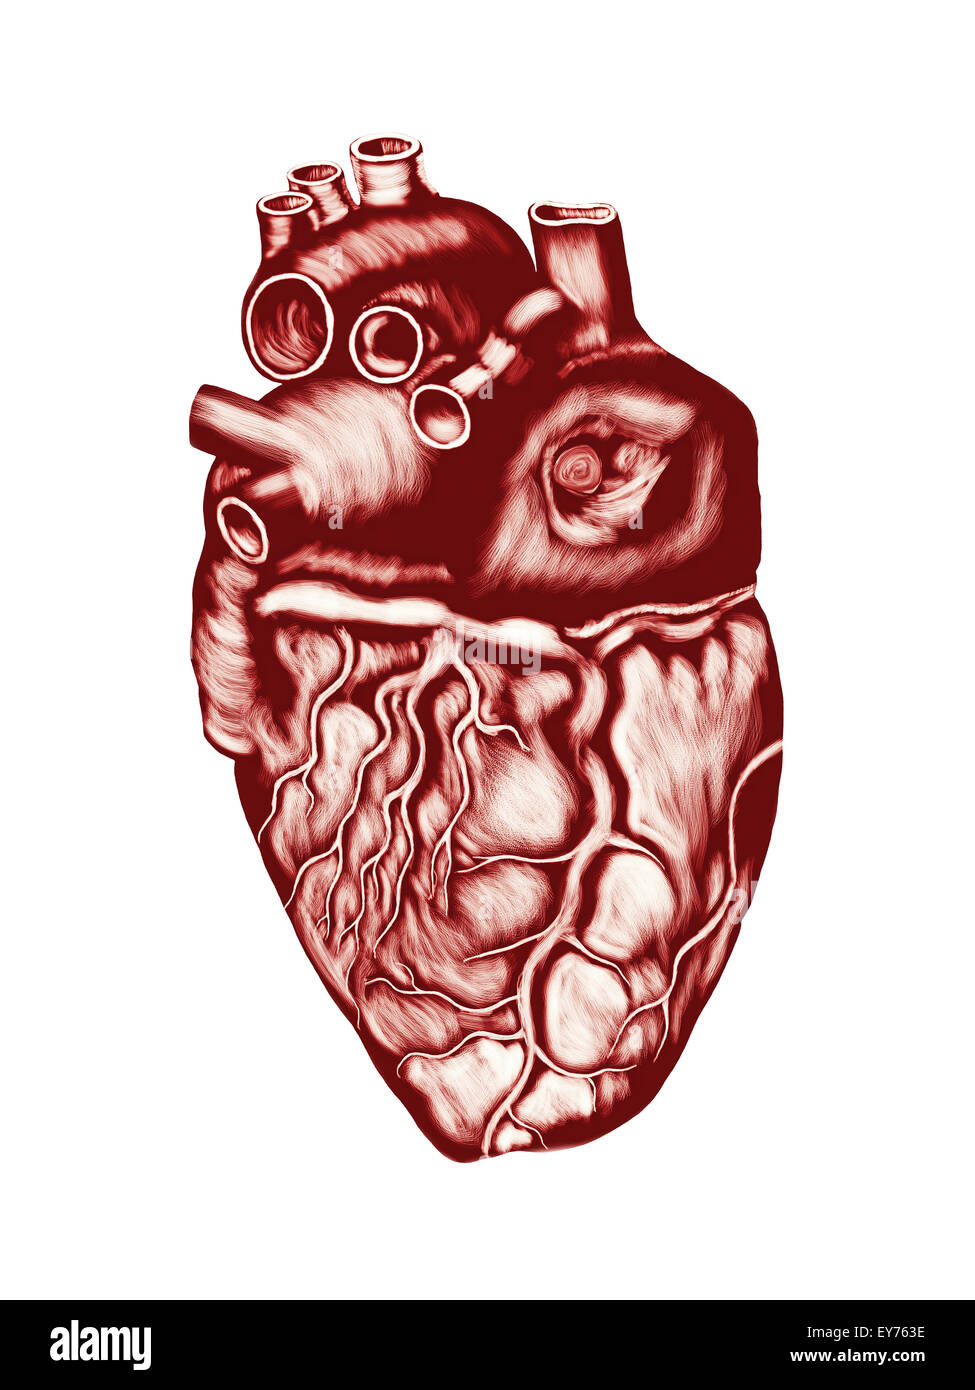 Human Heart Anatomy: chambers, valves and vessels, isolated over ...